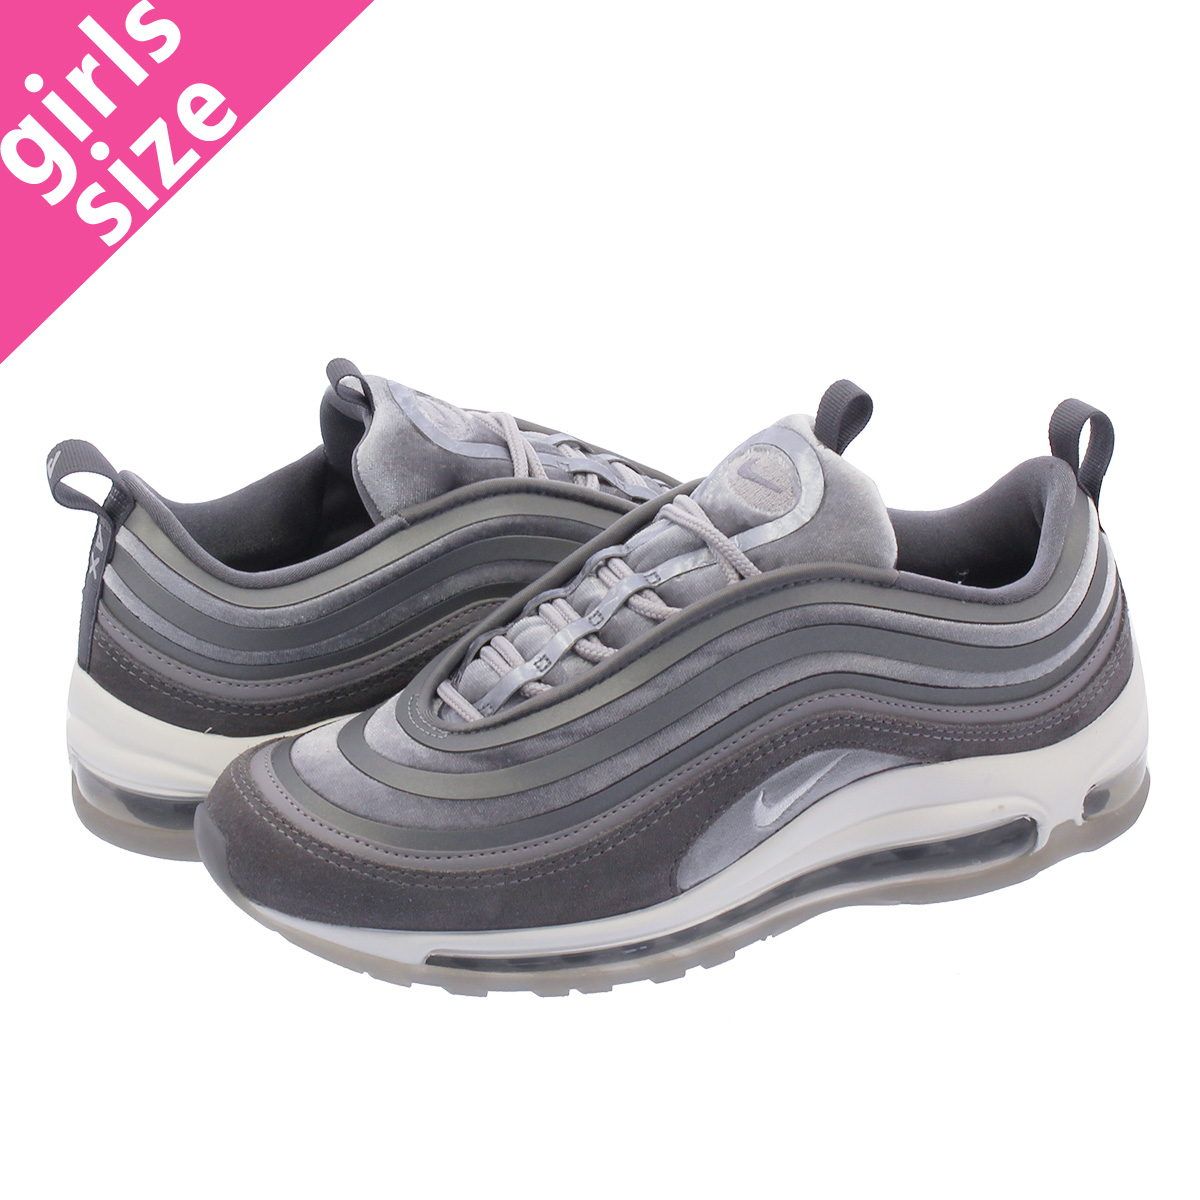 284604bef3 SELECT SHOP LOWTEX: NIKE WMNS AIR MAX 97 UL '17 LX Nike women Air ...